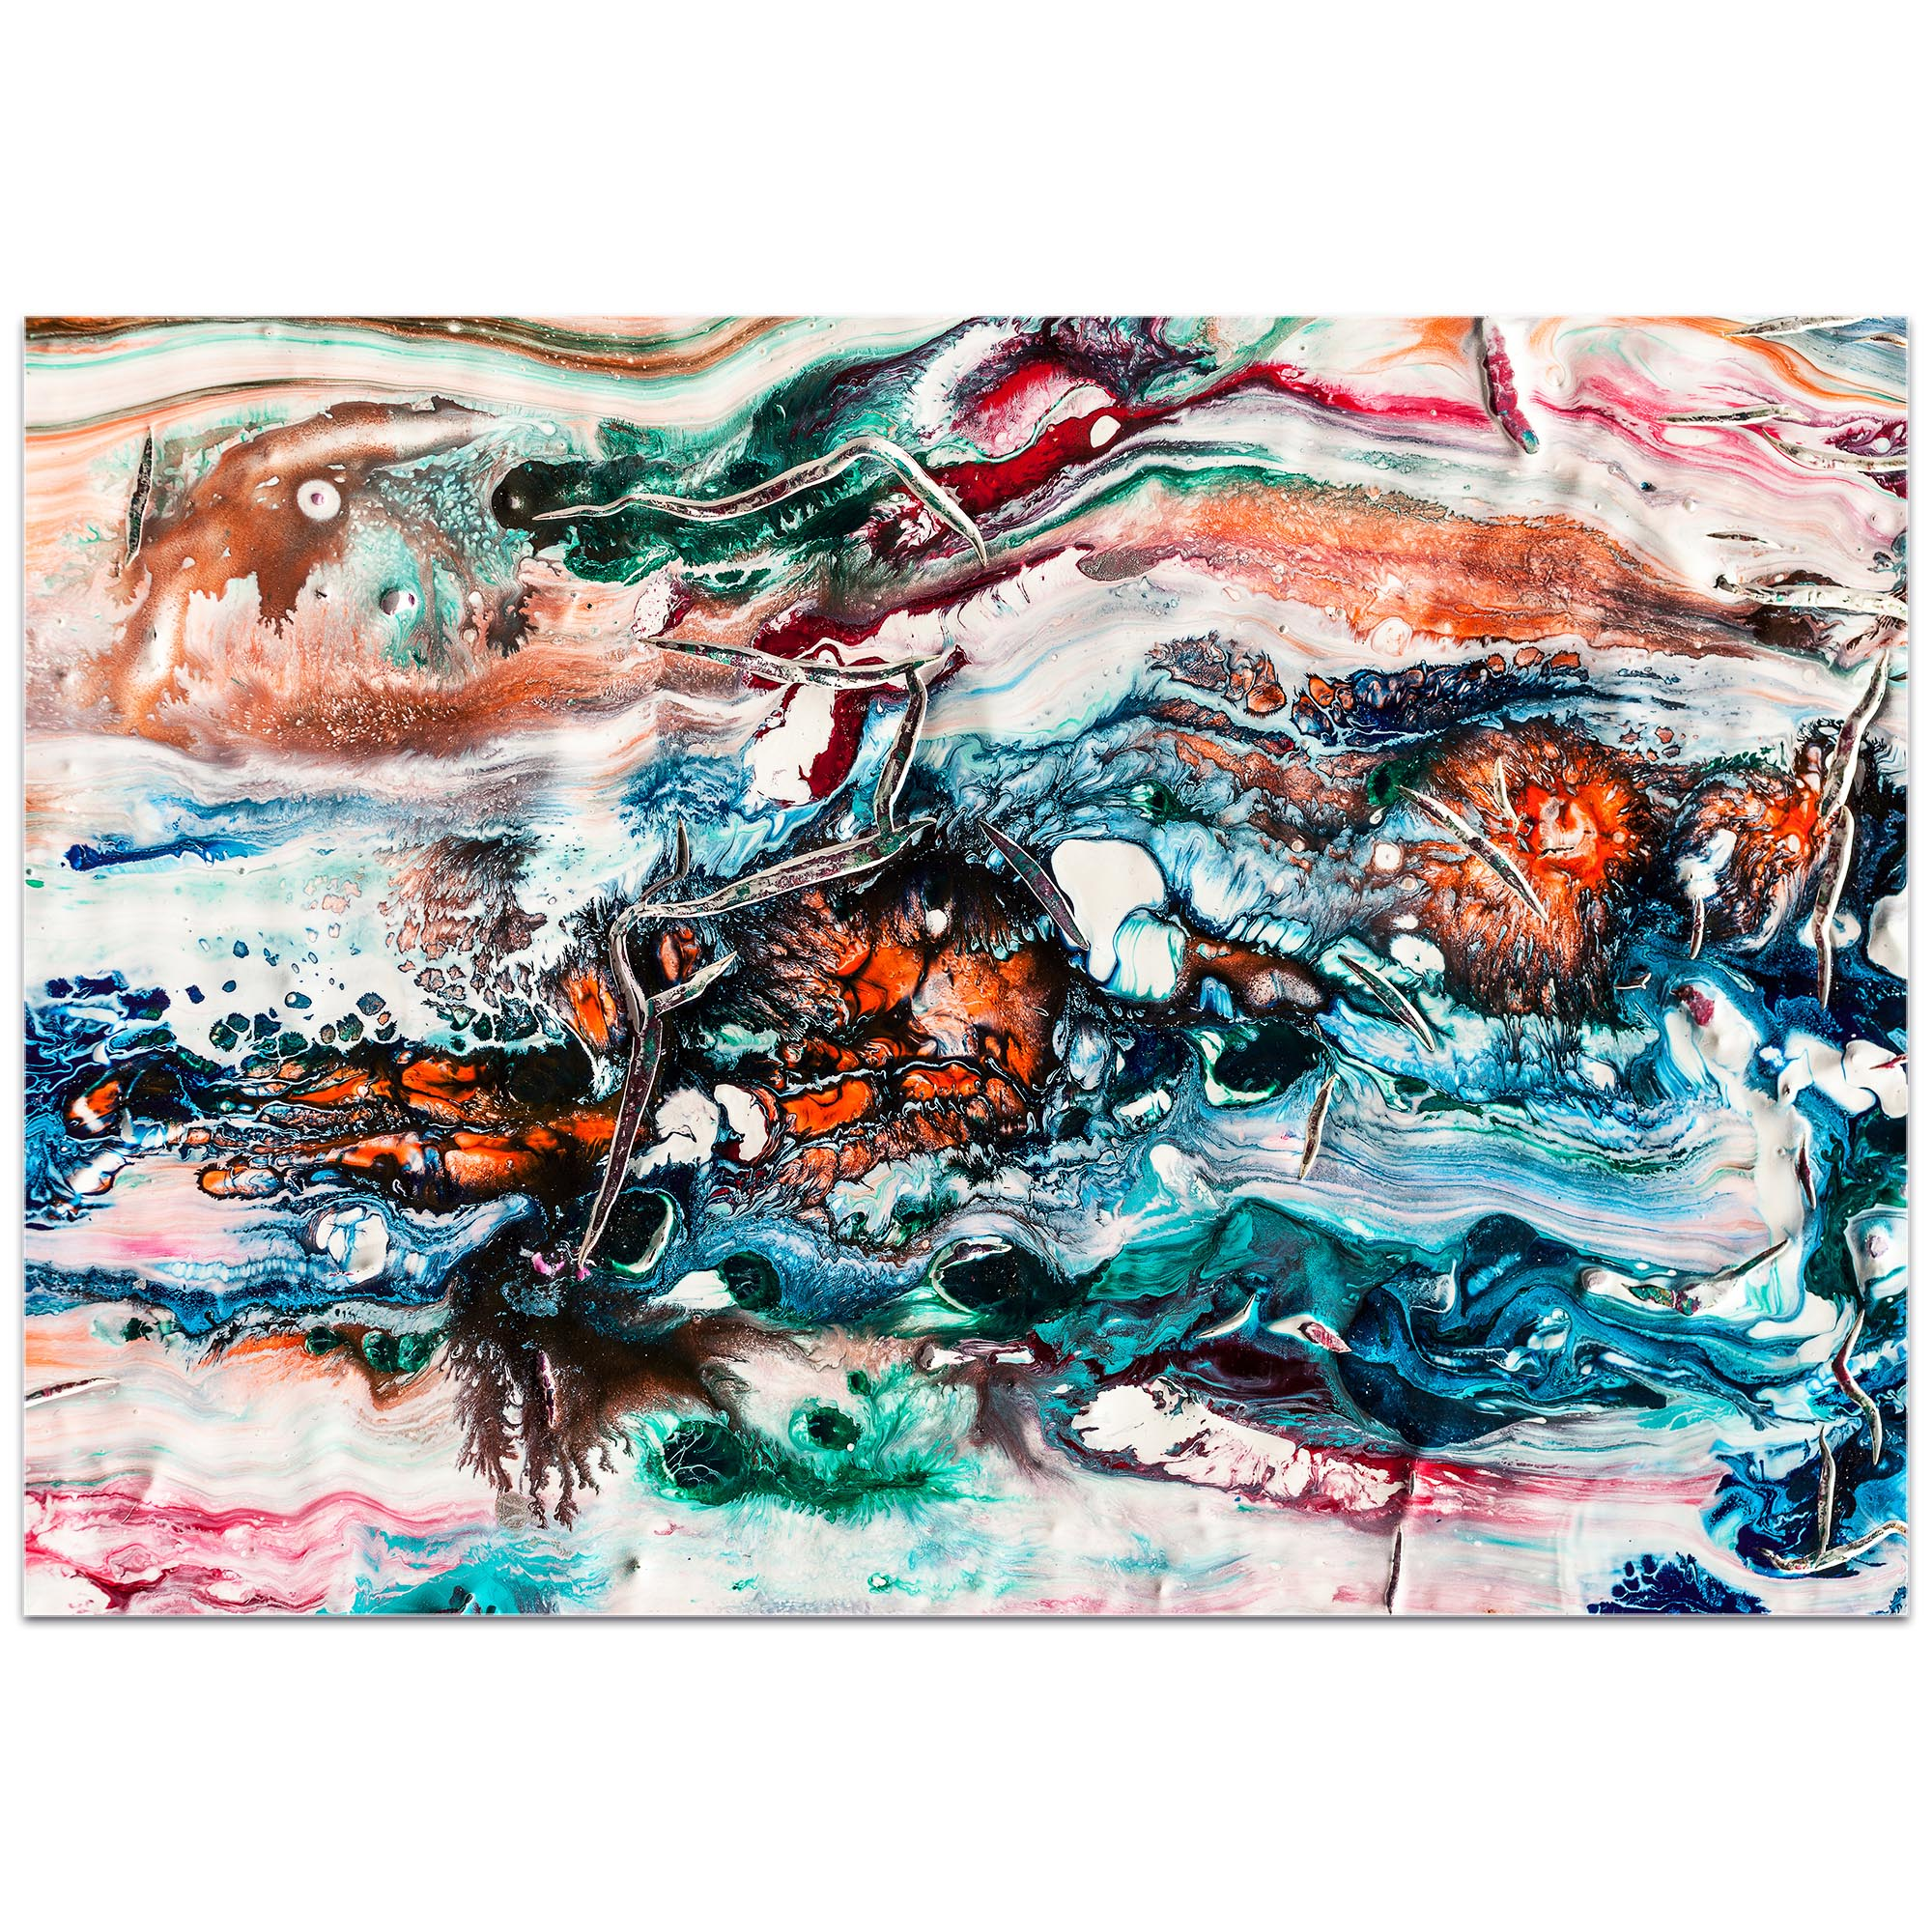 Abstract Wall Art 'Sunset On Her Breath 2' - Colorful Urban Decor on Metal or Plexiglass - Image 2